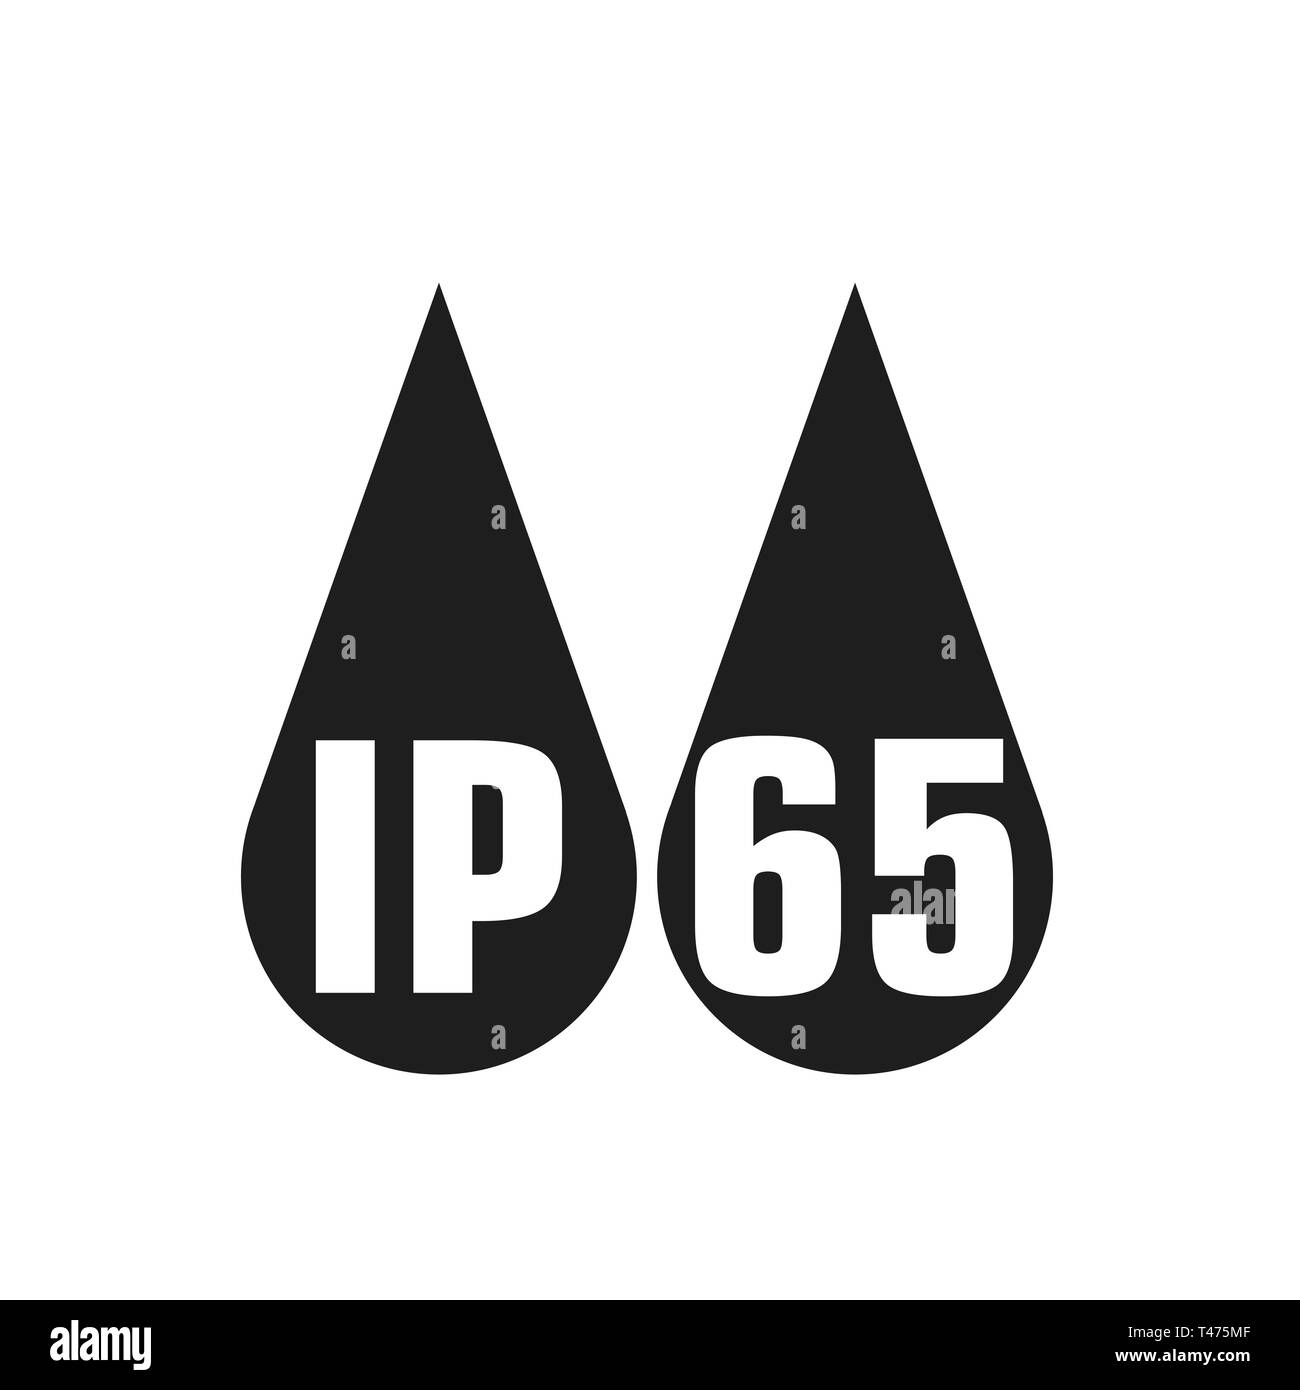 IP65 protection certificate standard icon. Water and dust or solids resistant protected symbol. Vector illustration. eps10 - Stock Image